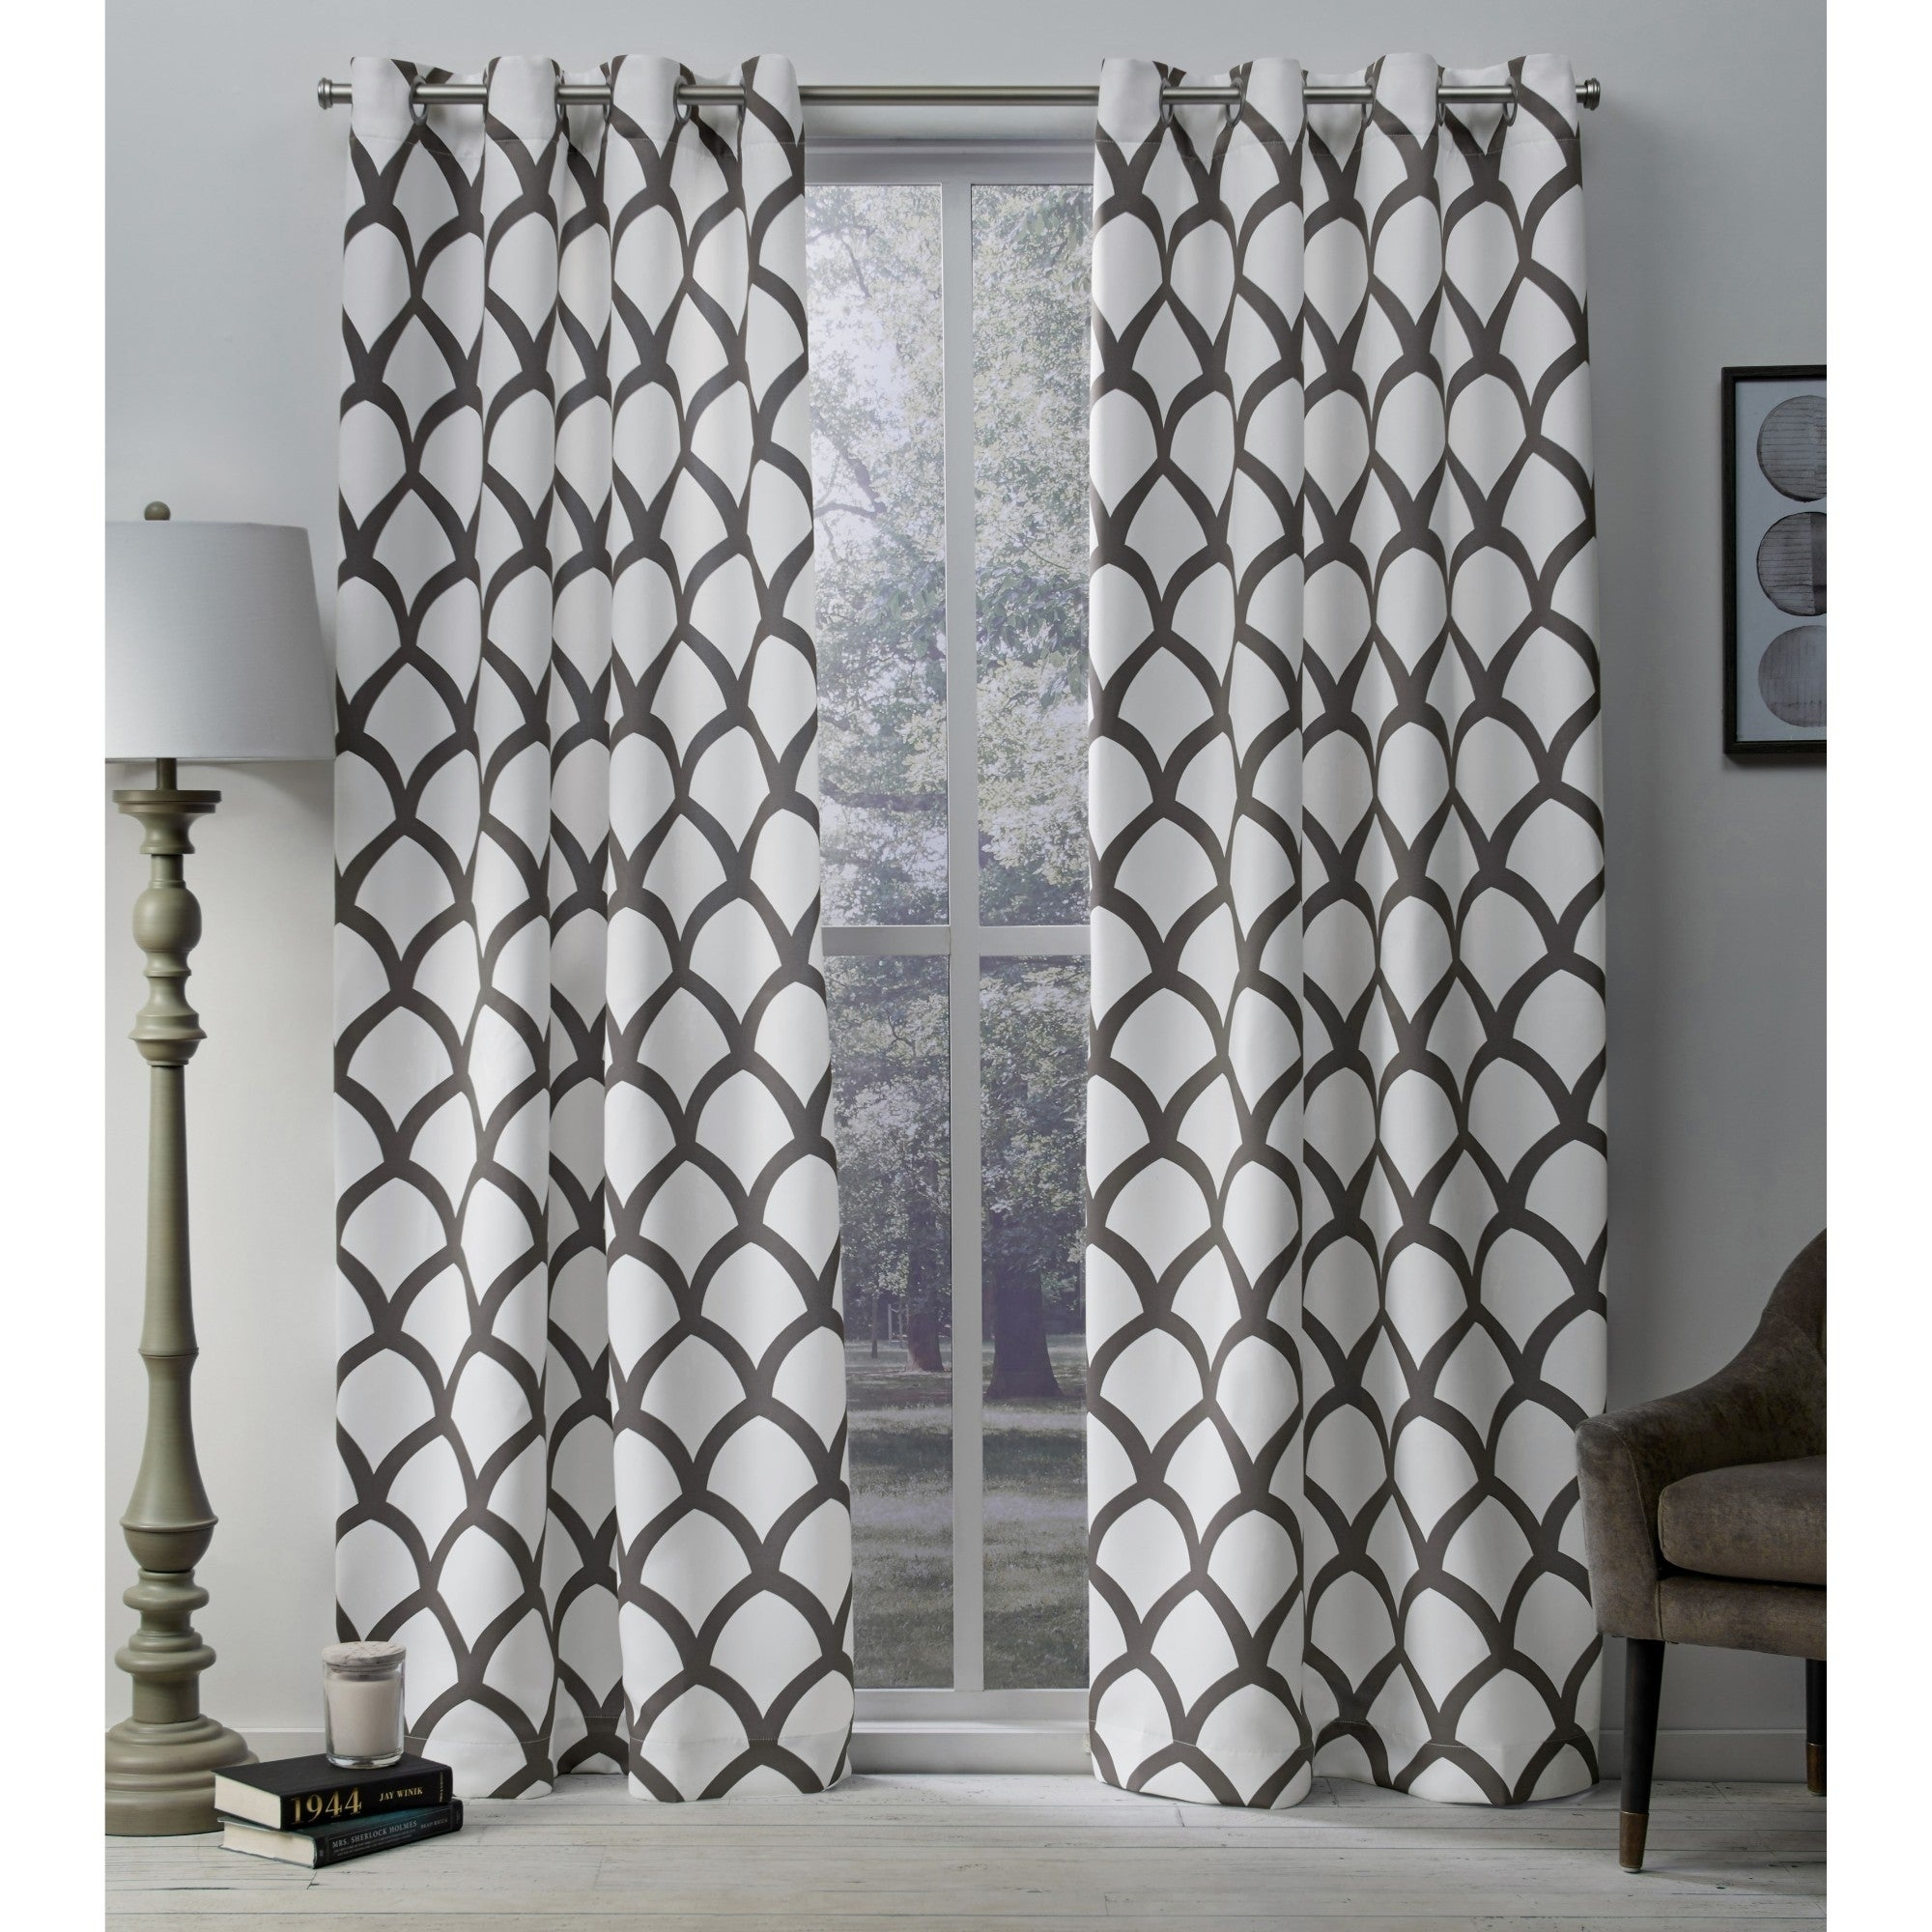 The Curated Nomad Ames Sateen Woven Blackout Grommet Top Curtain Panel Pair With Regard To The Curated Nomad Duane Blackout Curtain Panel Pairs (View 13 of 30)